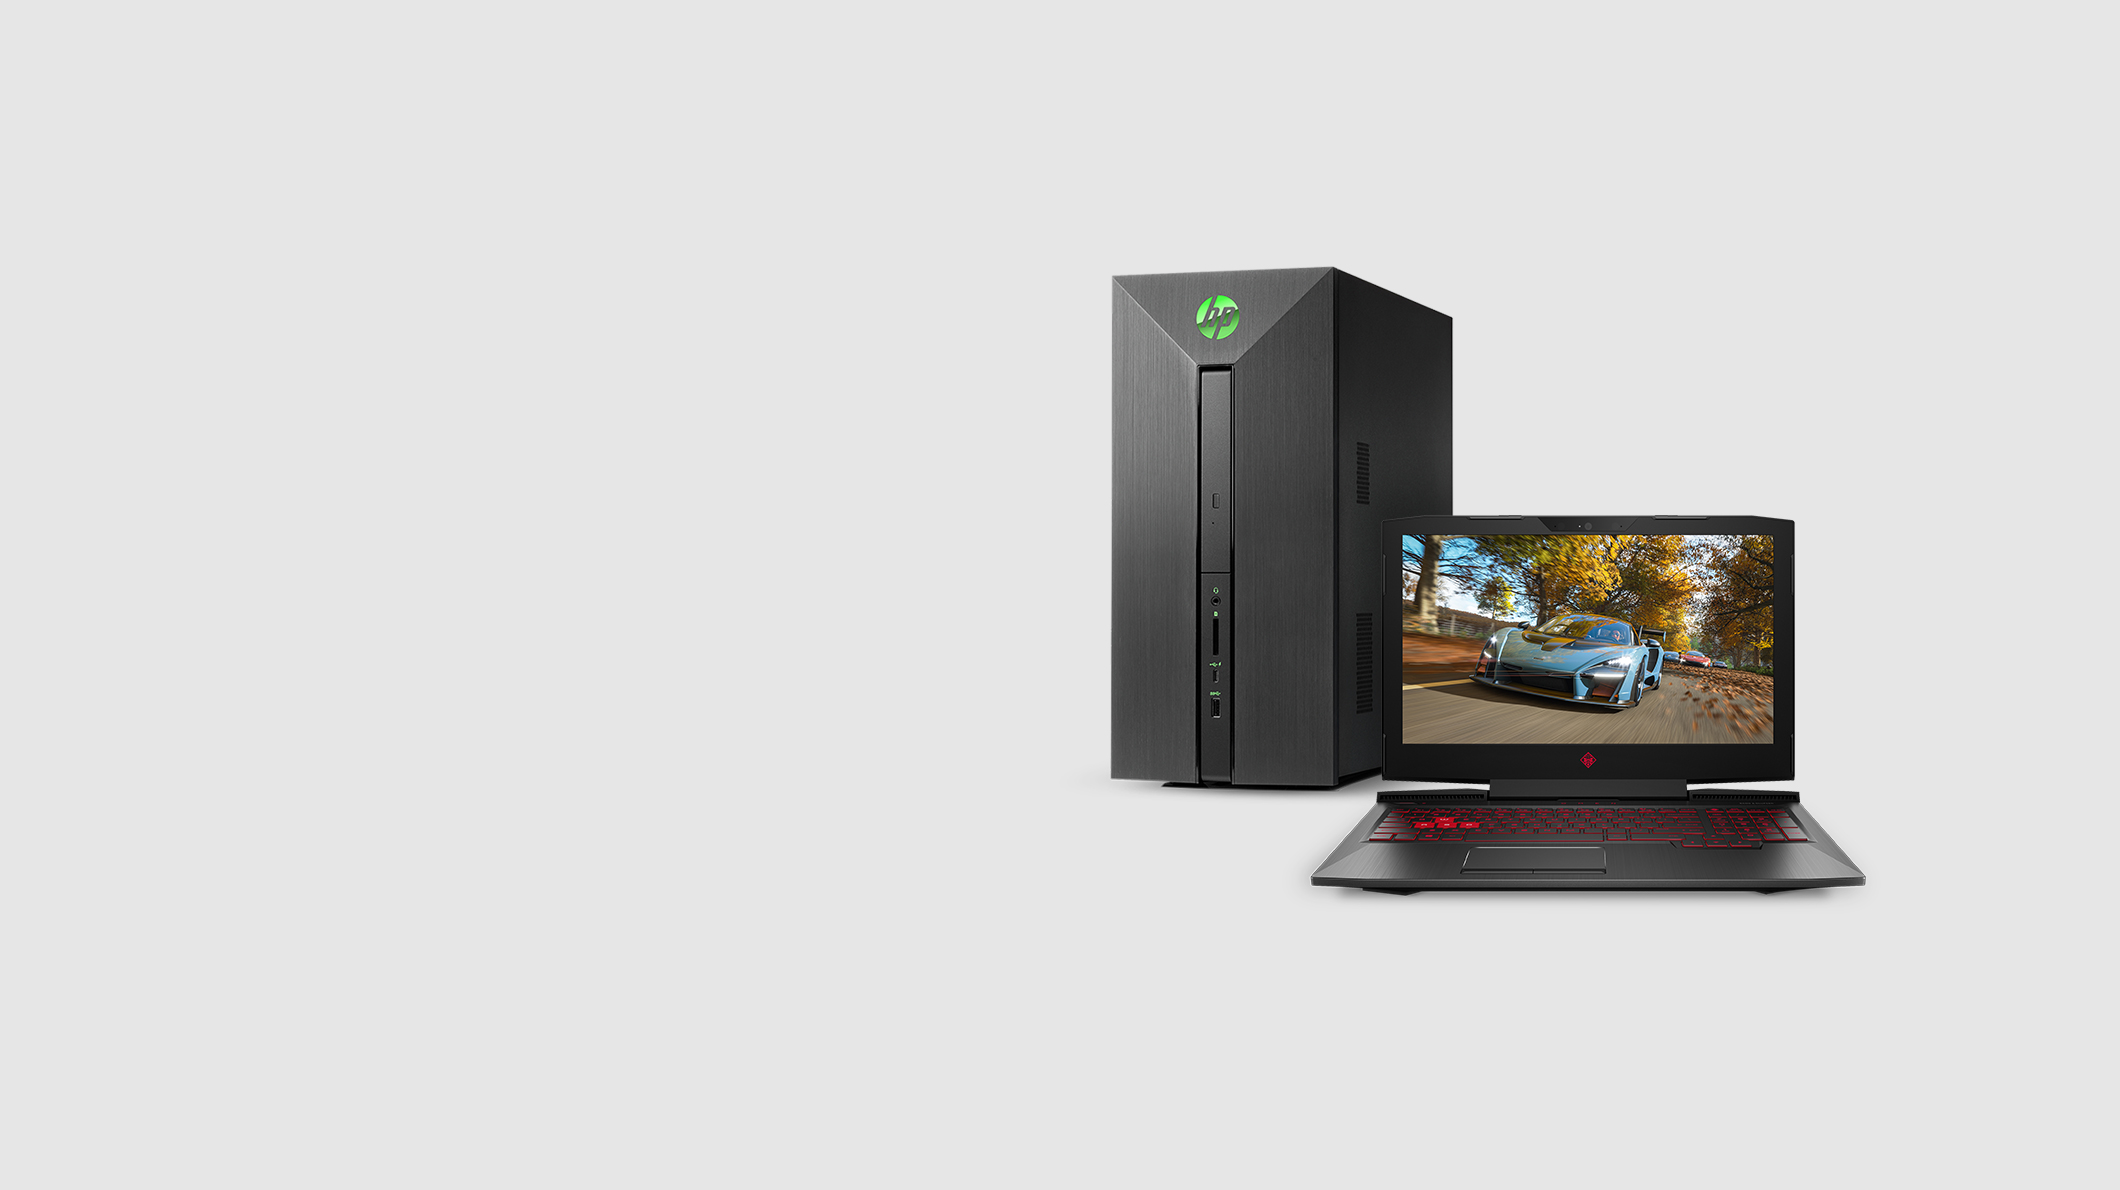 HP gaming devices